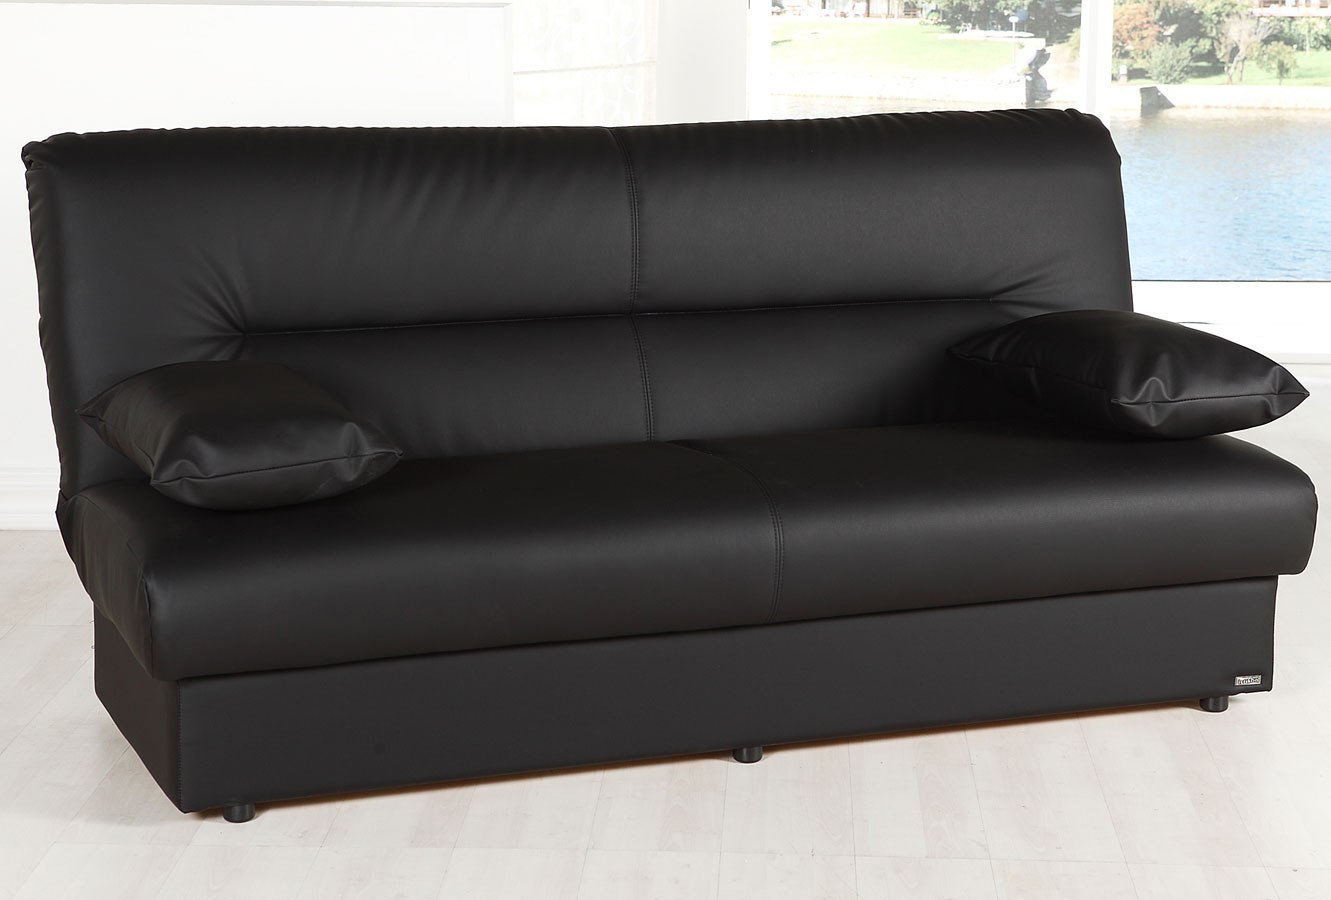 What's A Click Clack Sofa Regata Click Clack Sofa Bed (escudo Black) By Istikbal